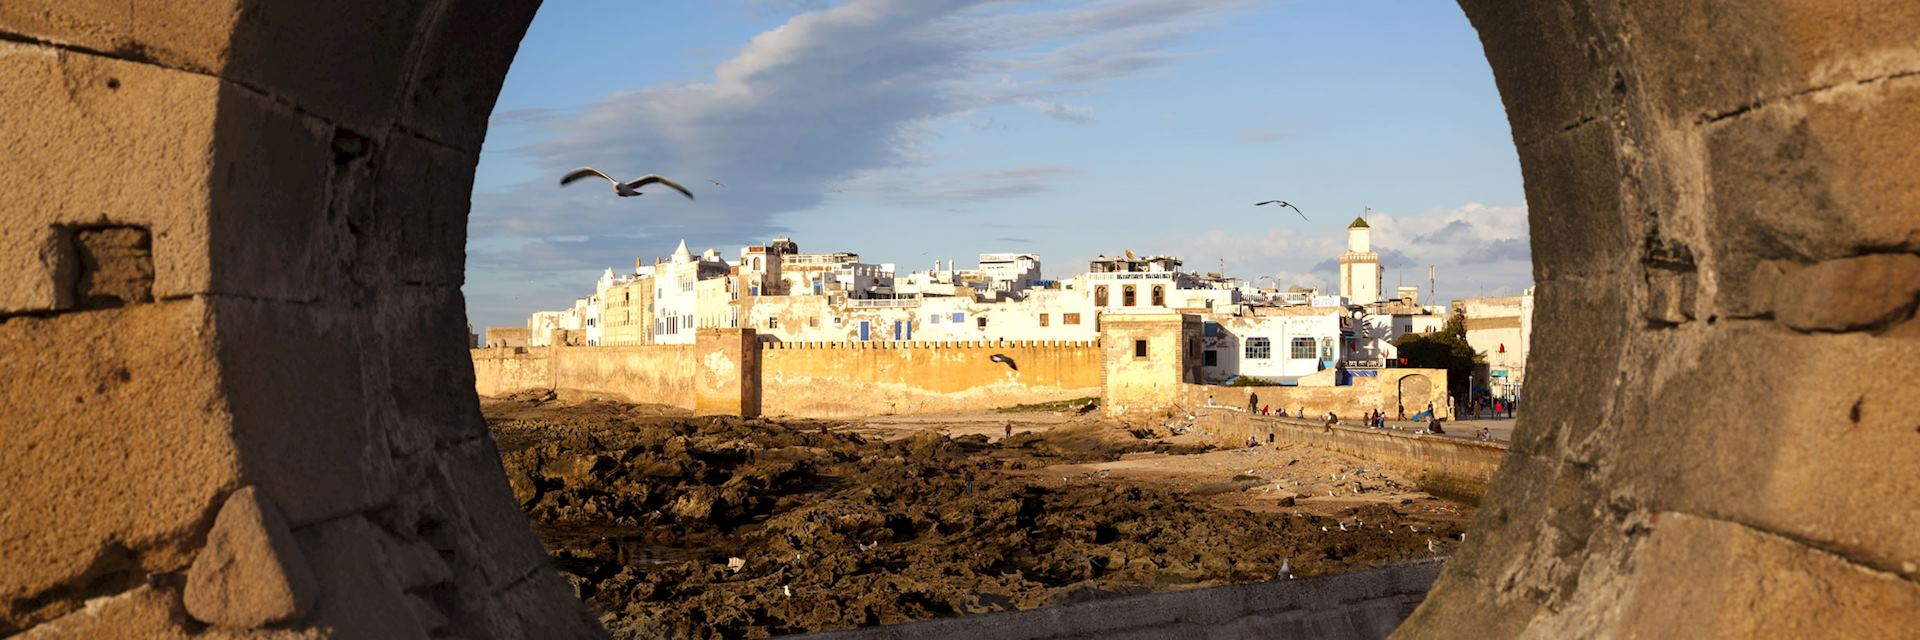 Essaouira at sunset